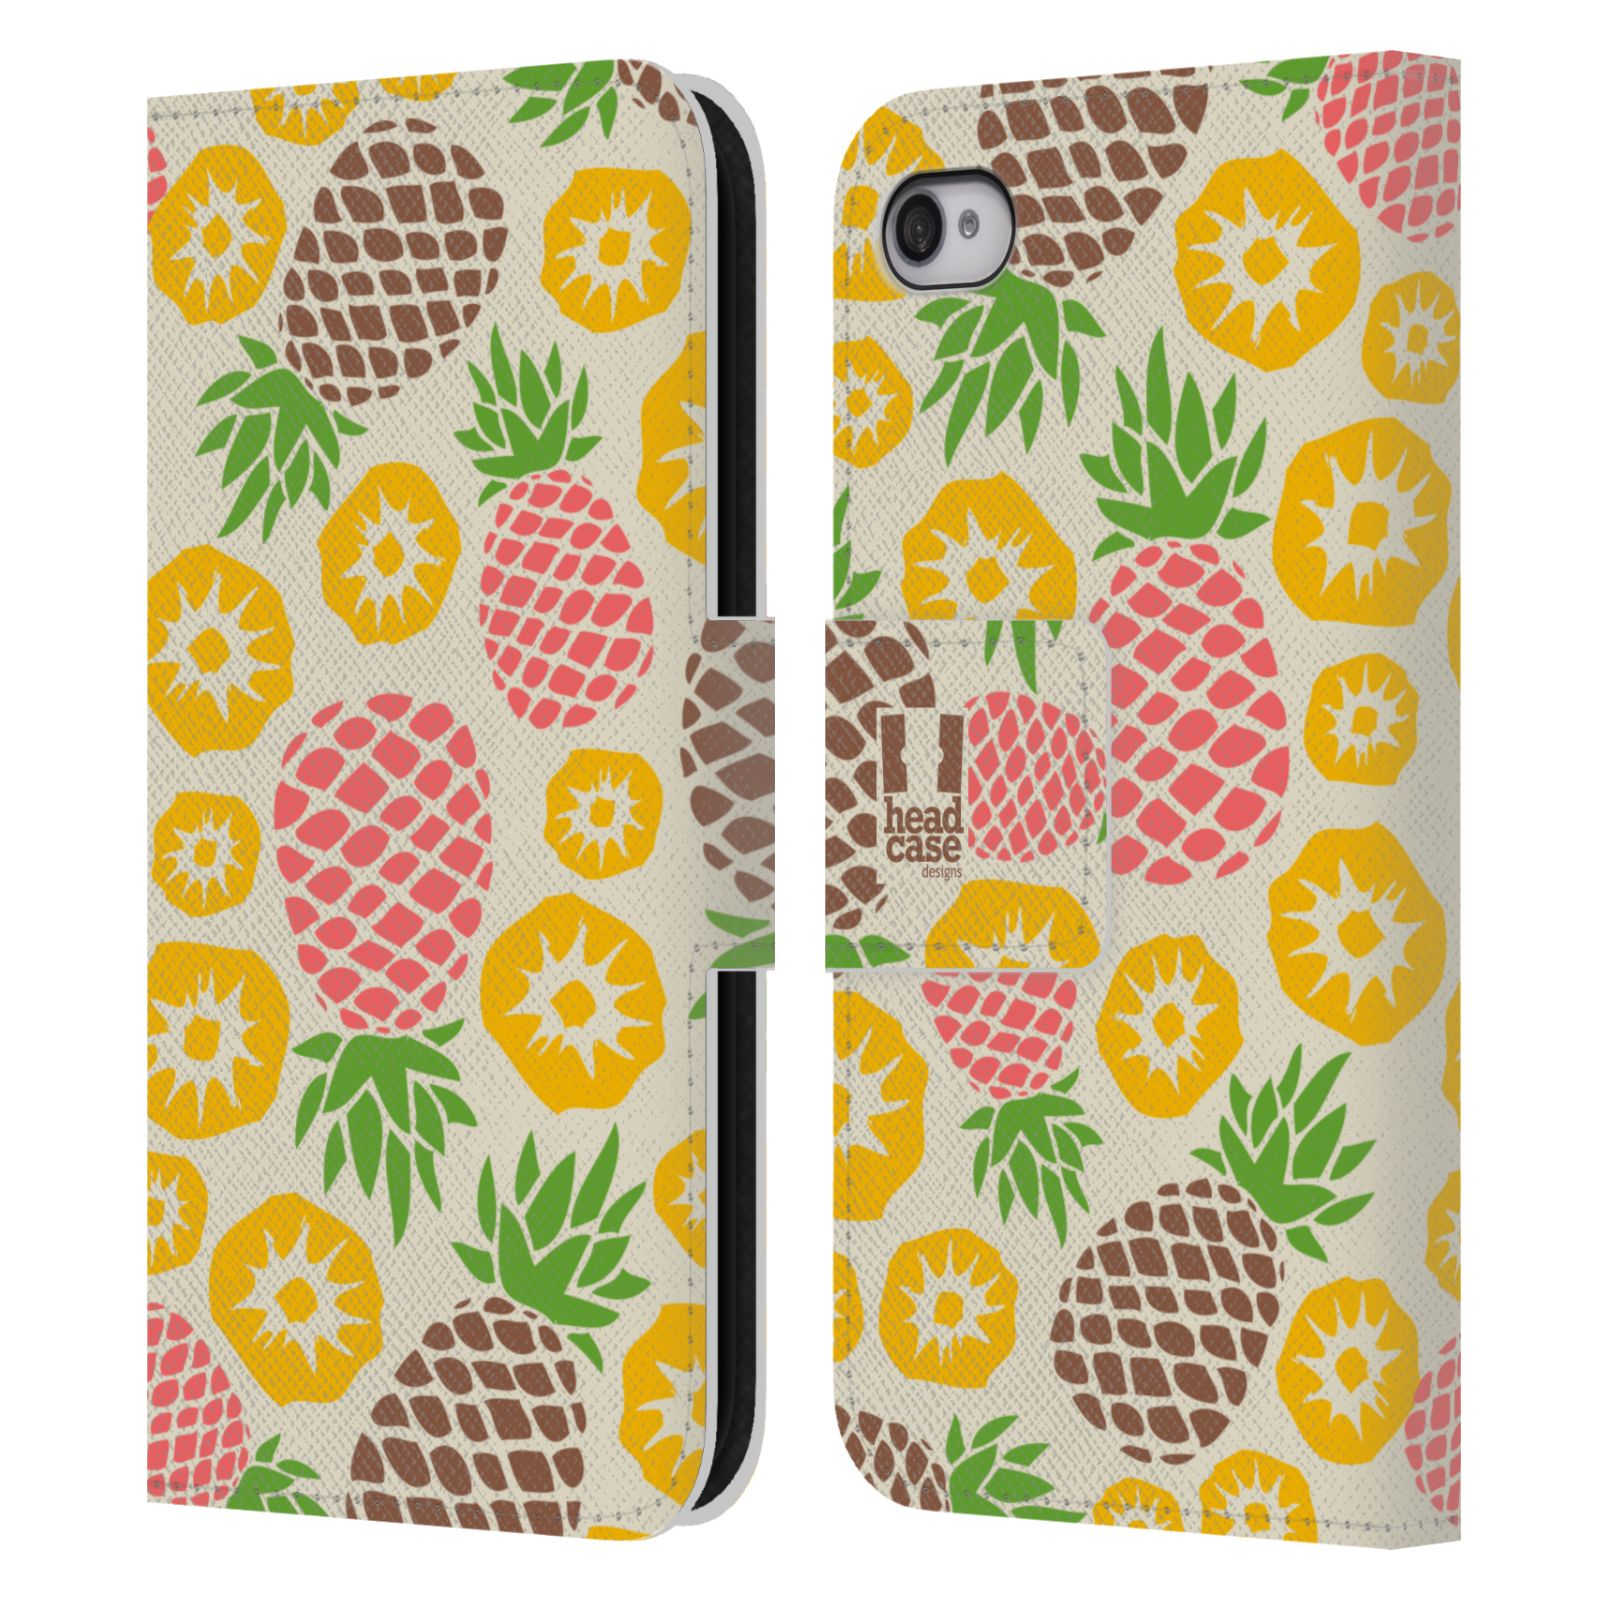 Head case designs pineapple patterns leather book case for for Apple design book